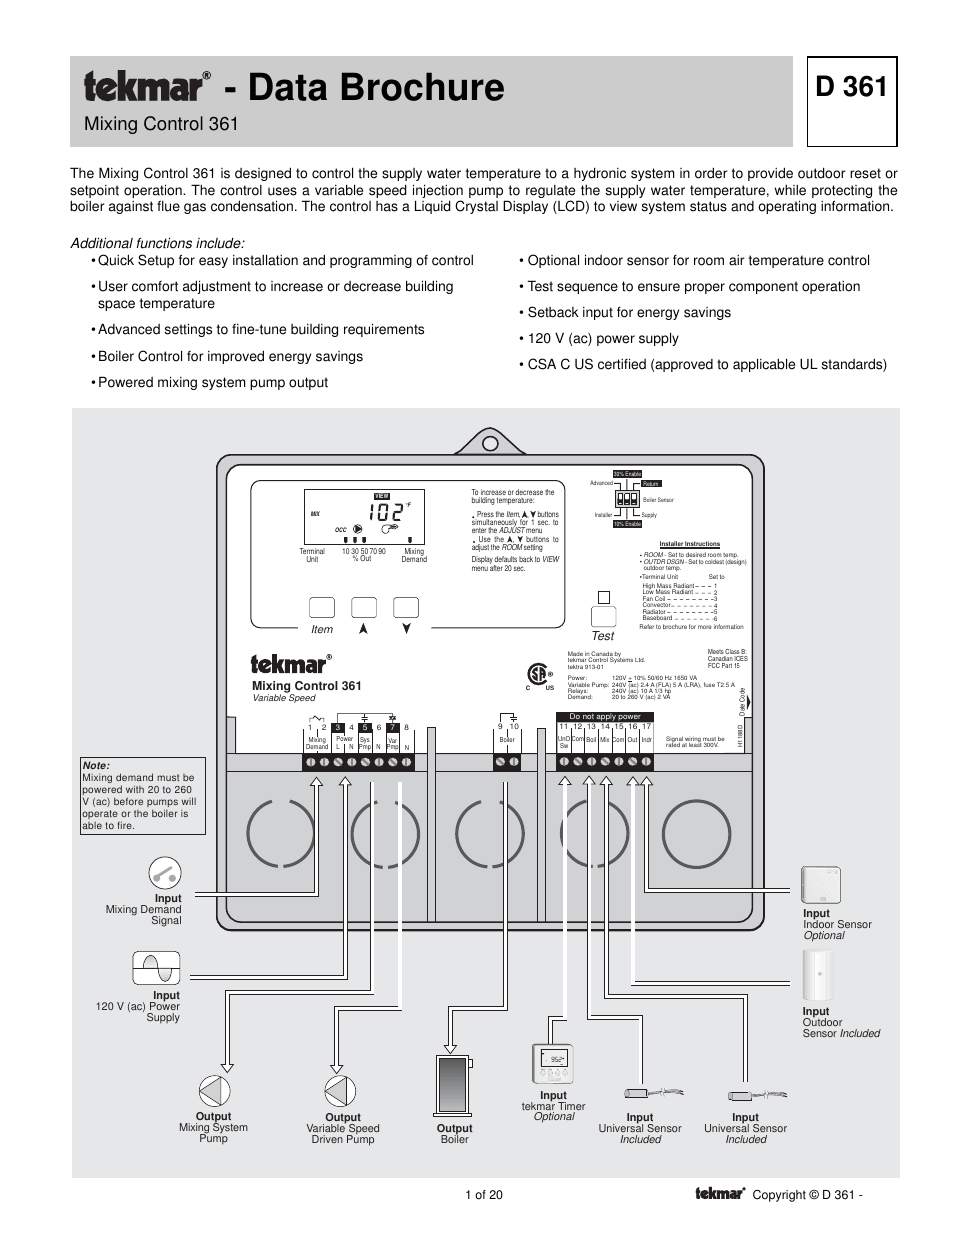 hight resolution of tekmar wiring diagram wire management wiring diagram tekmar 361 mixing control user manual 20 pages